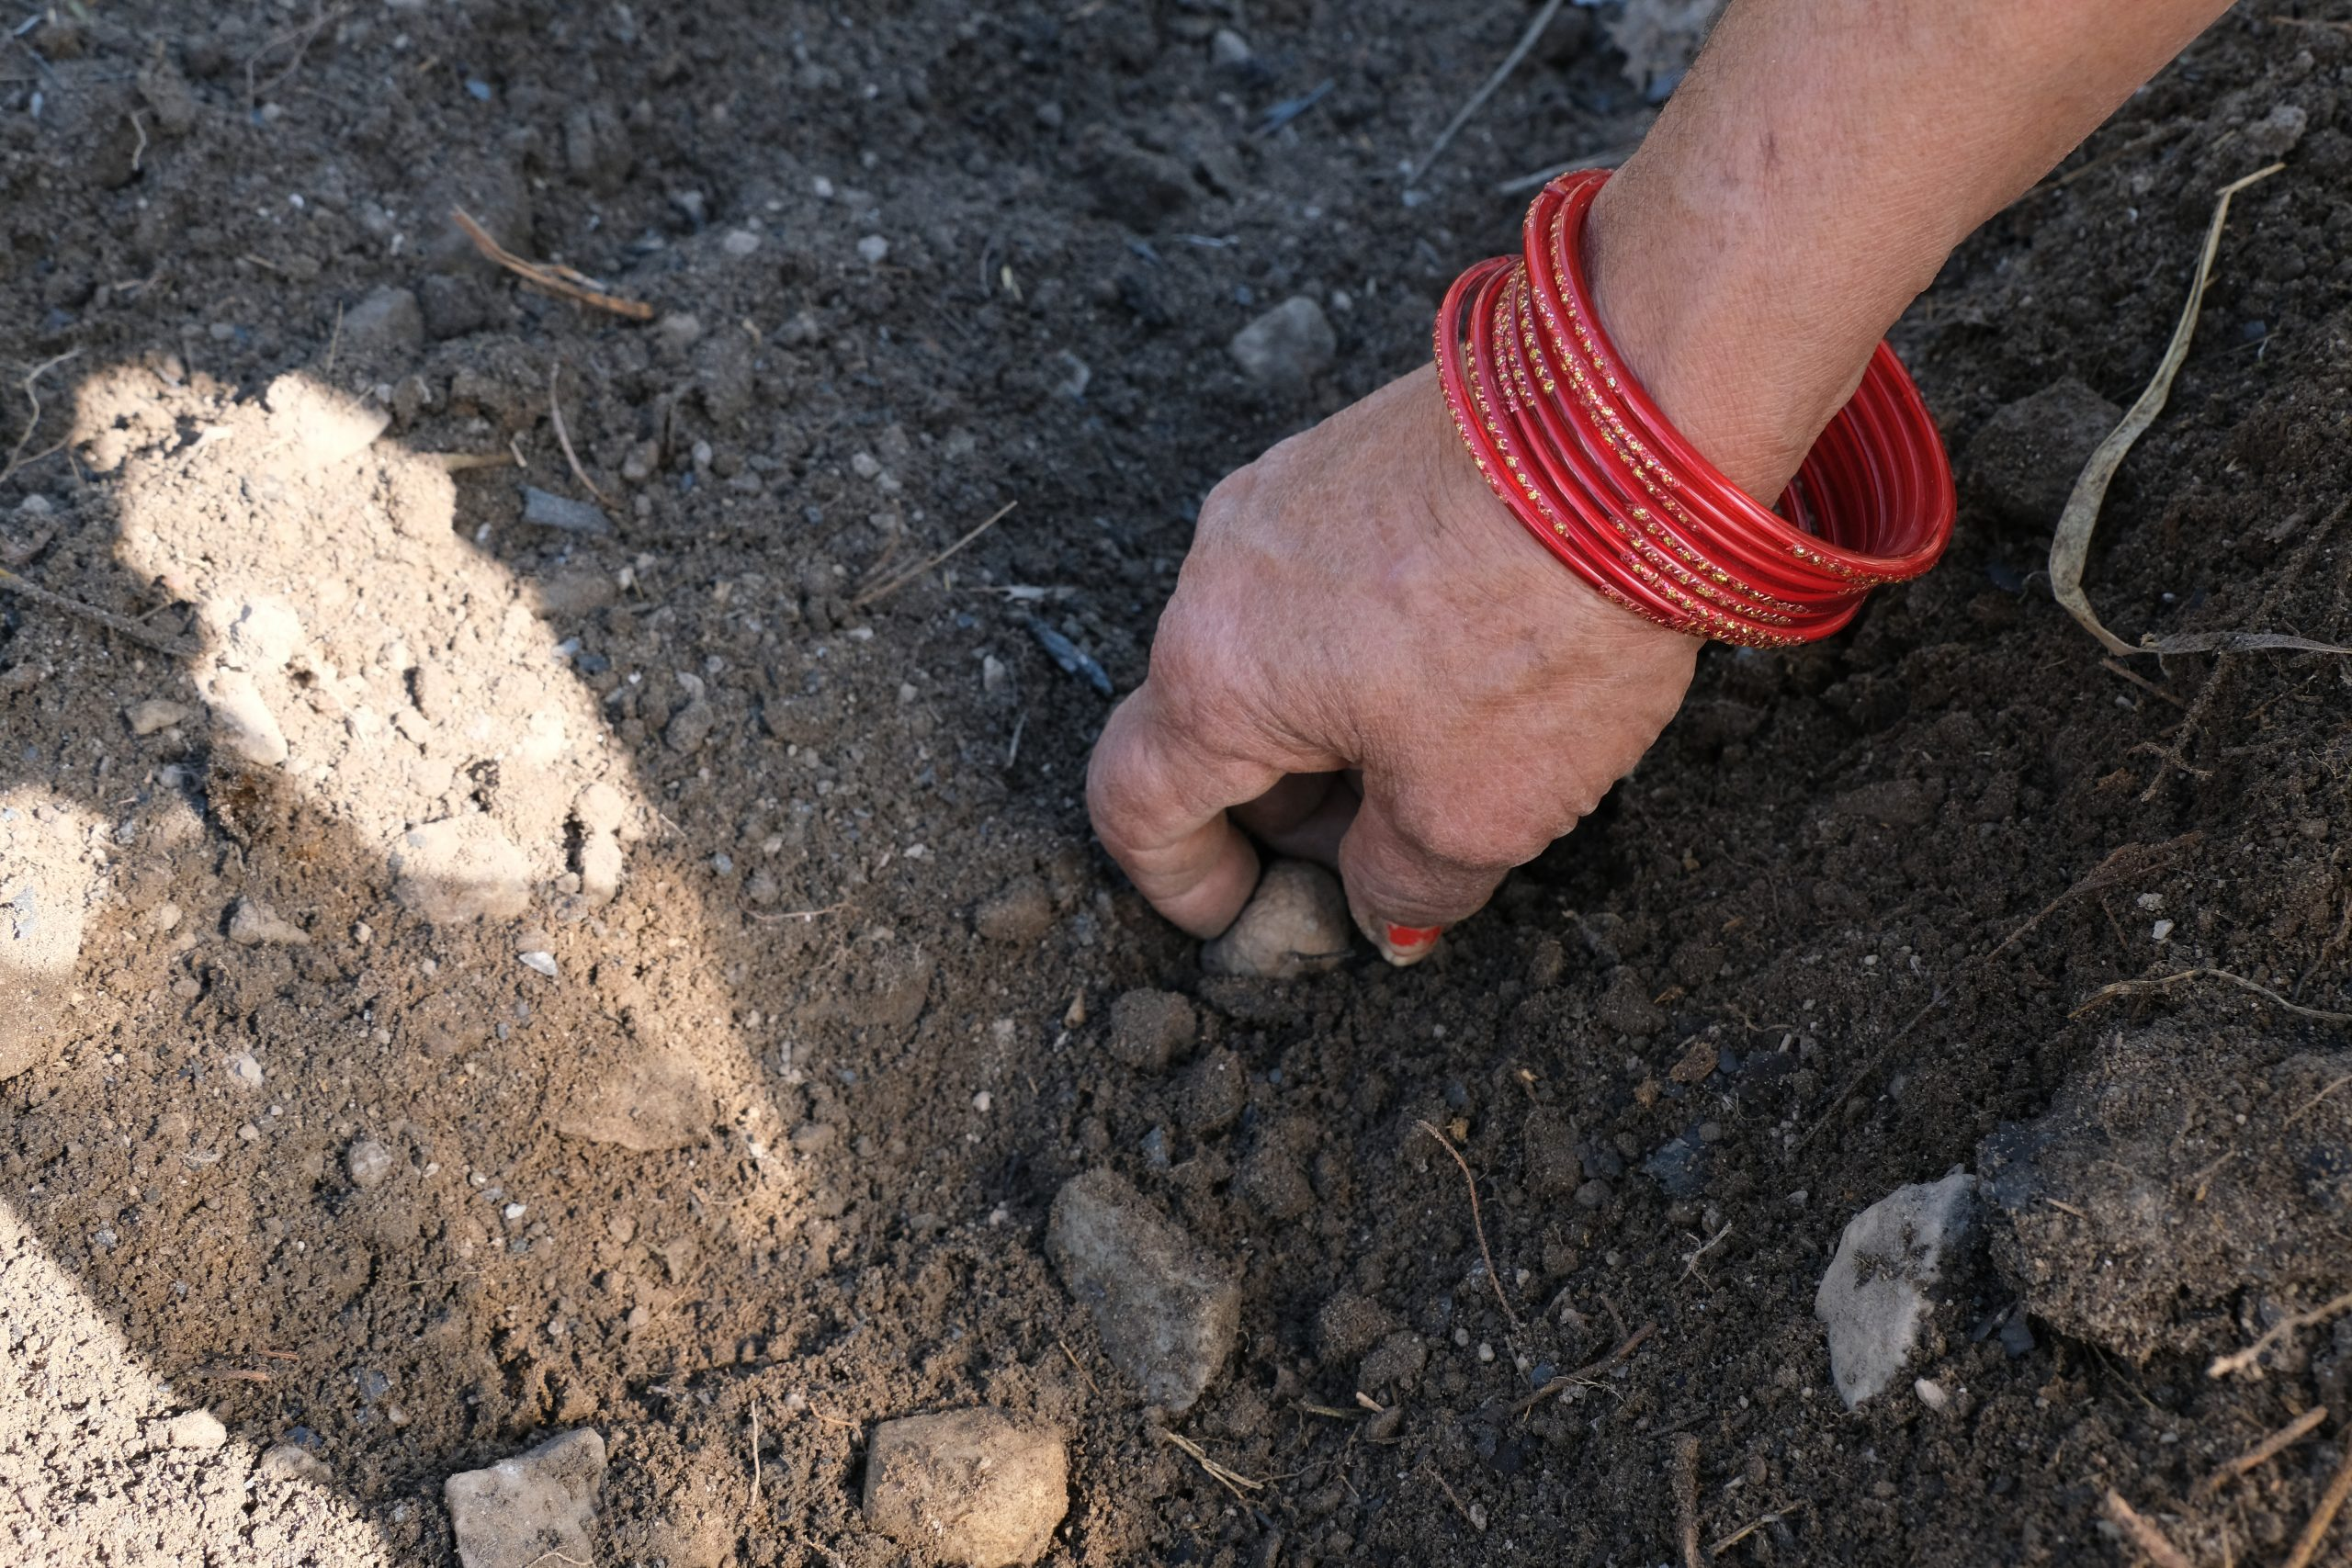 A farmer picking stone from soil